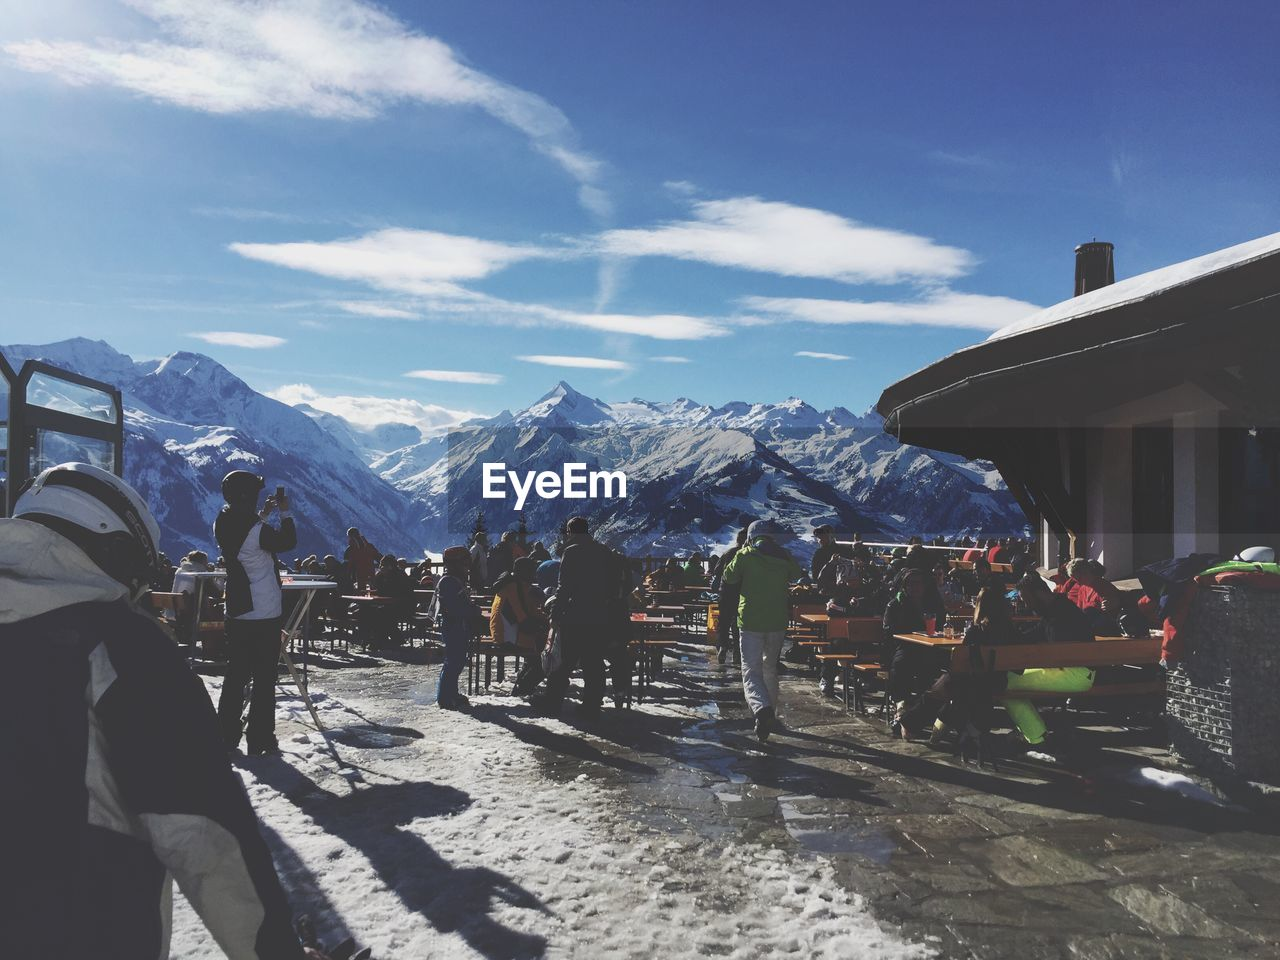 mountain, snow, sky, mountain range, cold temperature, cloud - sky, snowcapped mountain, nature, day, winter, outdoors, real people, sunlight, beauty in nature, scenics, landscape, vacations, men, large group of people, people